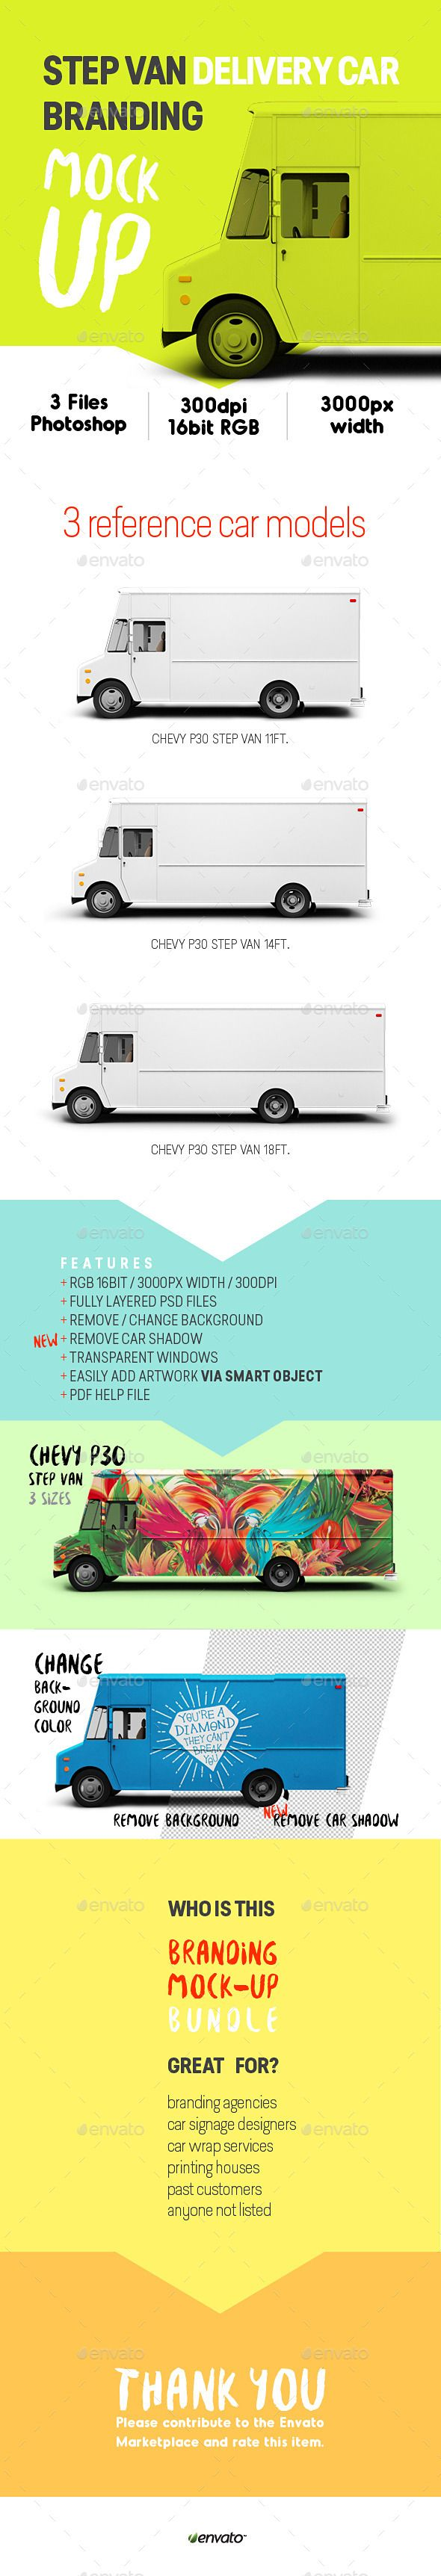 Step Van Delivery Cars Branding Mock UpThis Item Includes 3